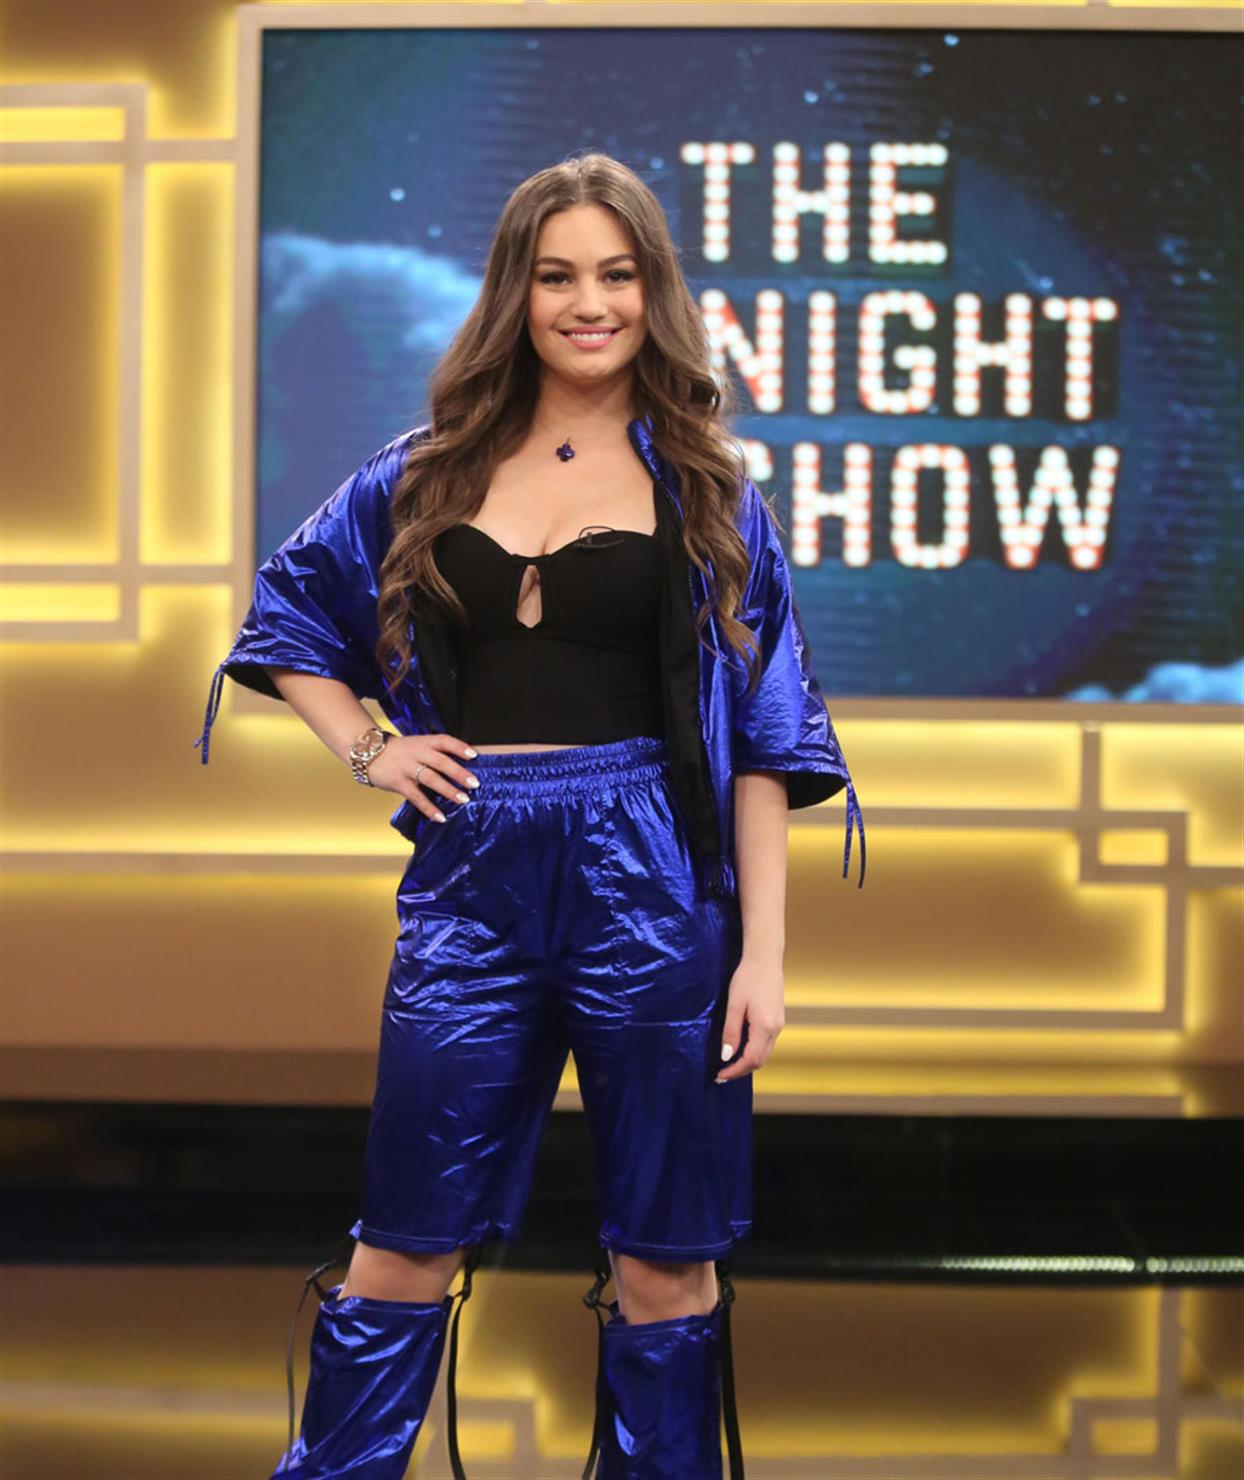 THE 2NIGHT SHOW - 8/5